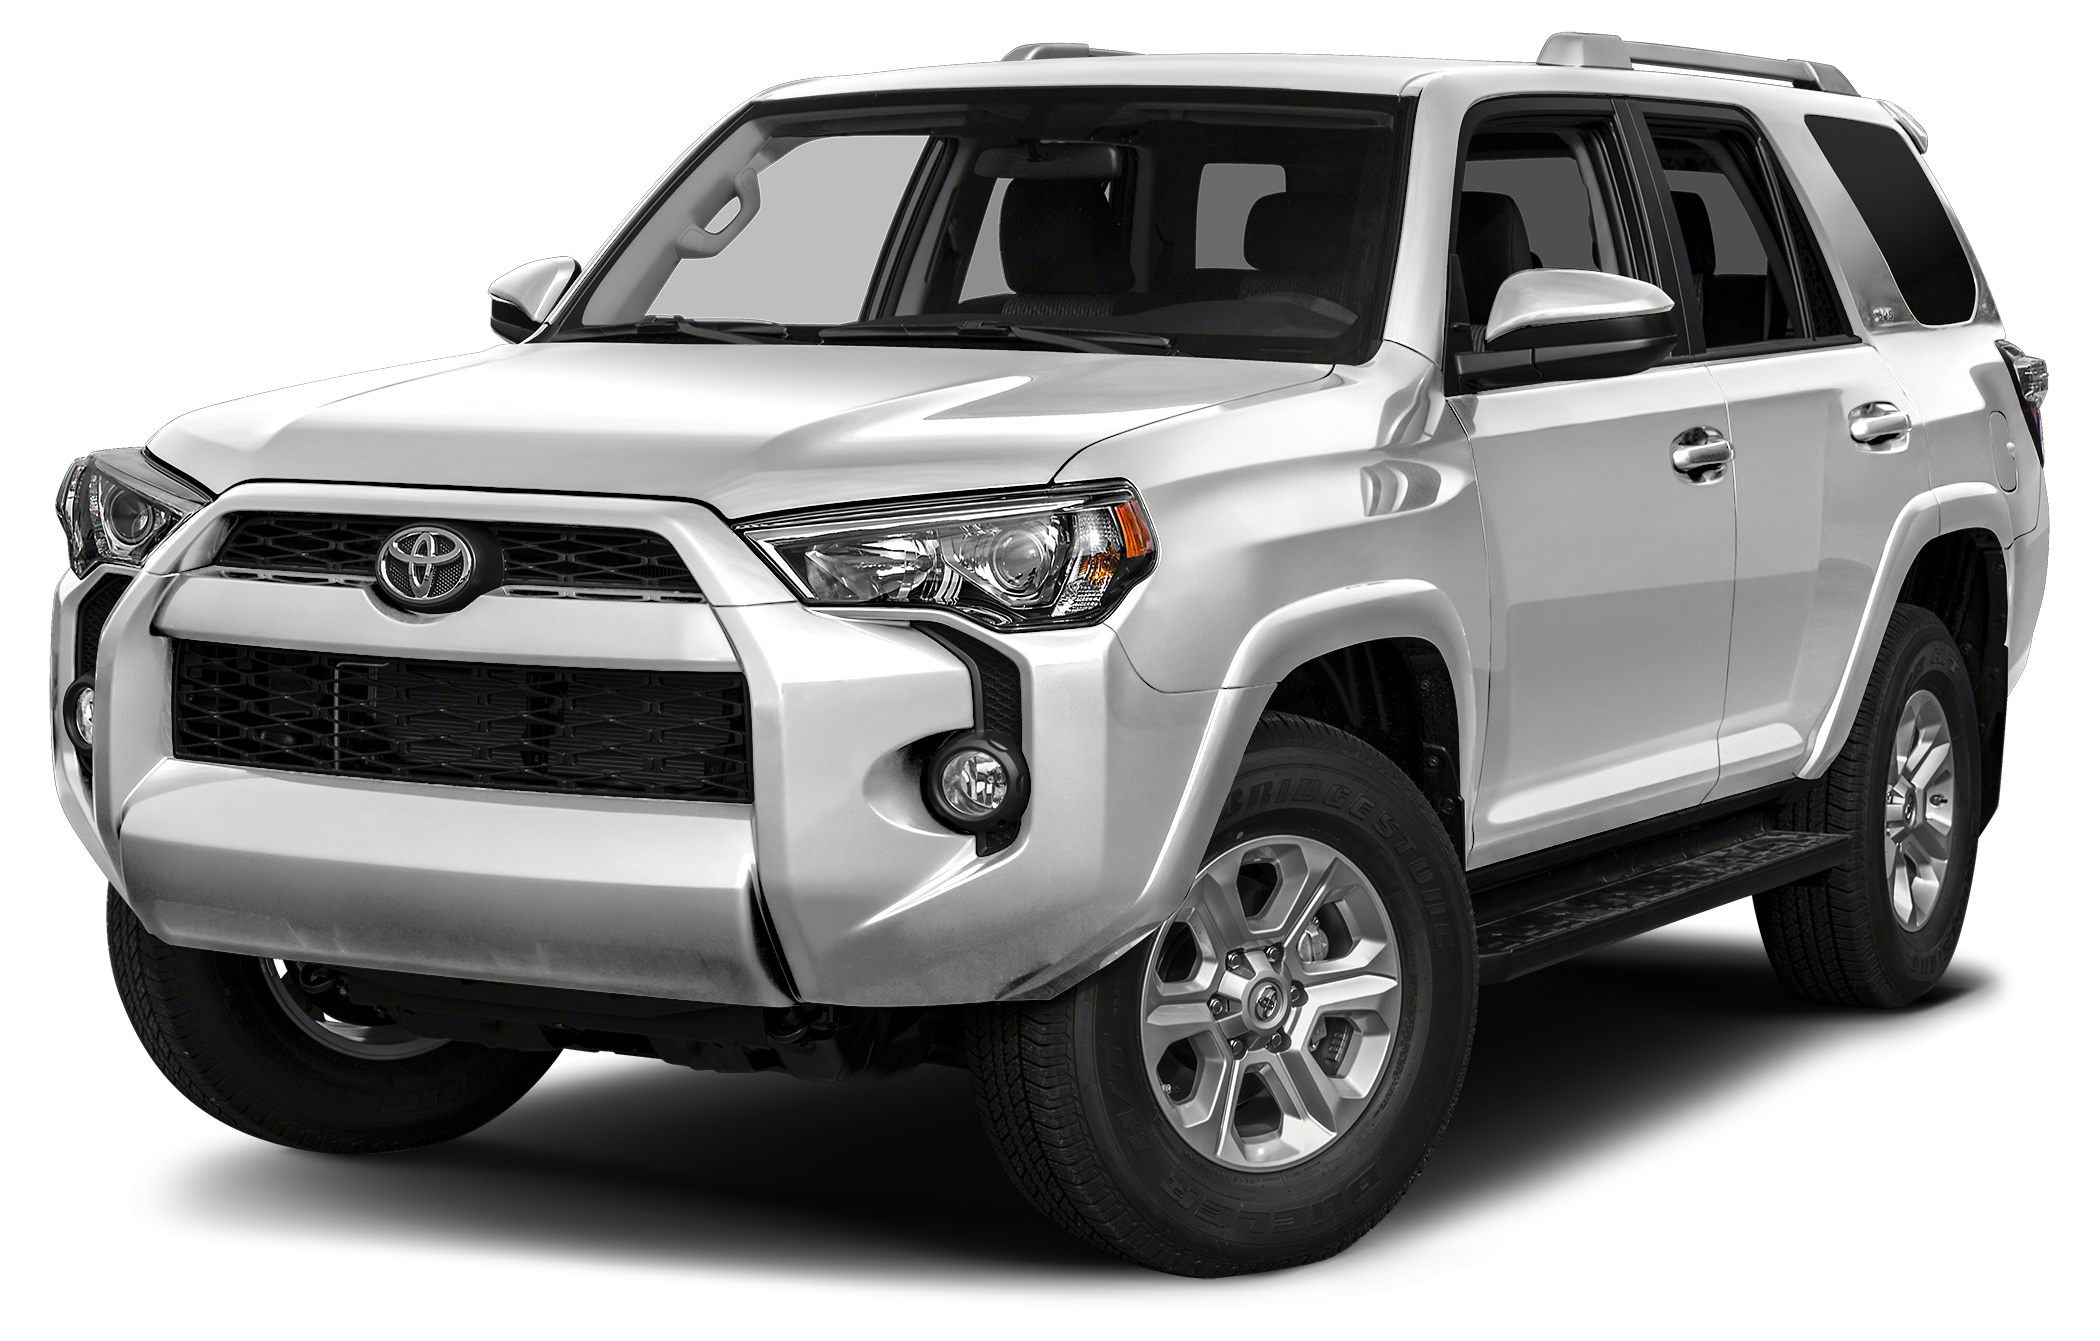 2015 Toyota 4Runner SR5 CARFAX 1-Owner 200 below Kelley Blue Book SR5 trim SUPER WHITE exterio